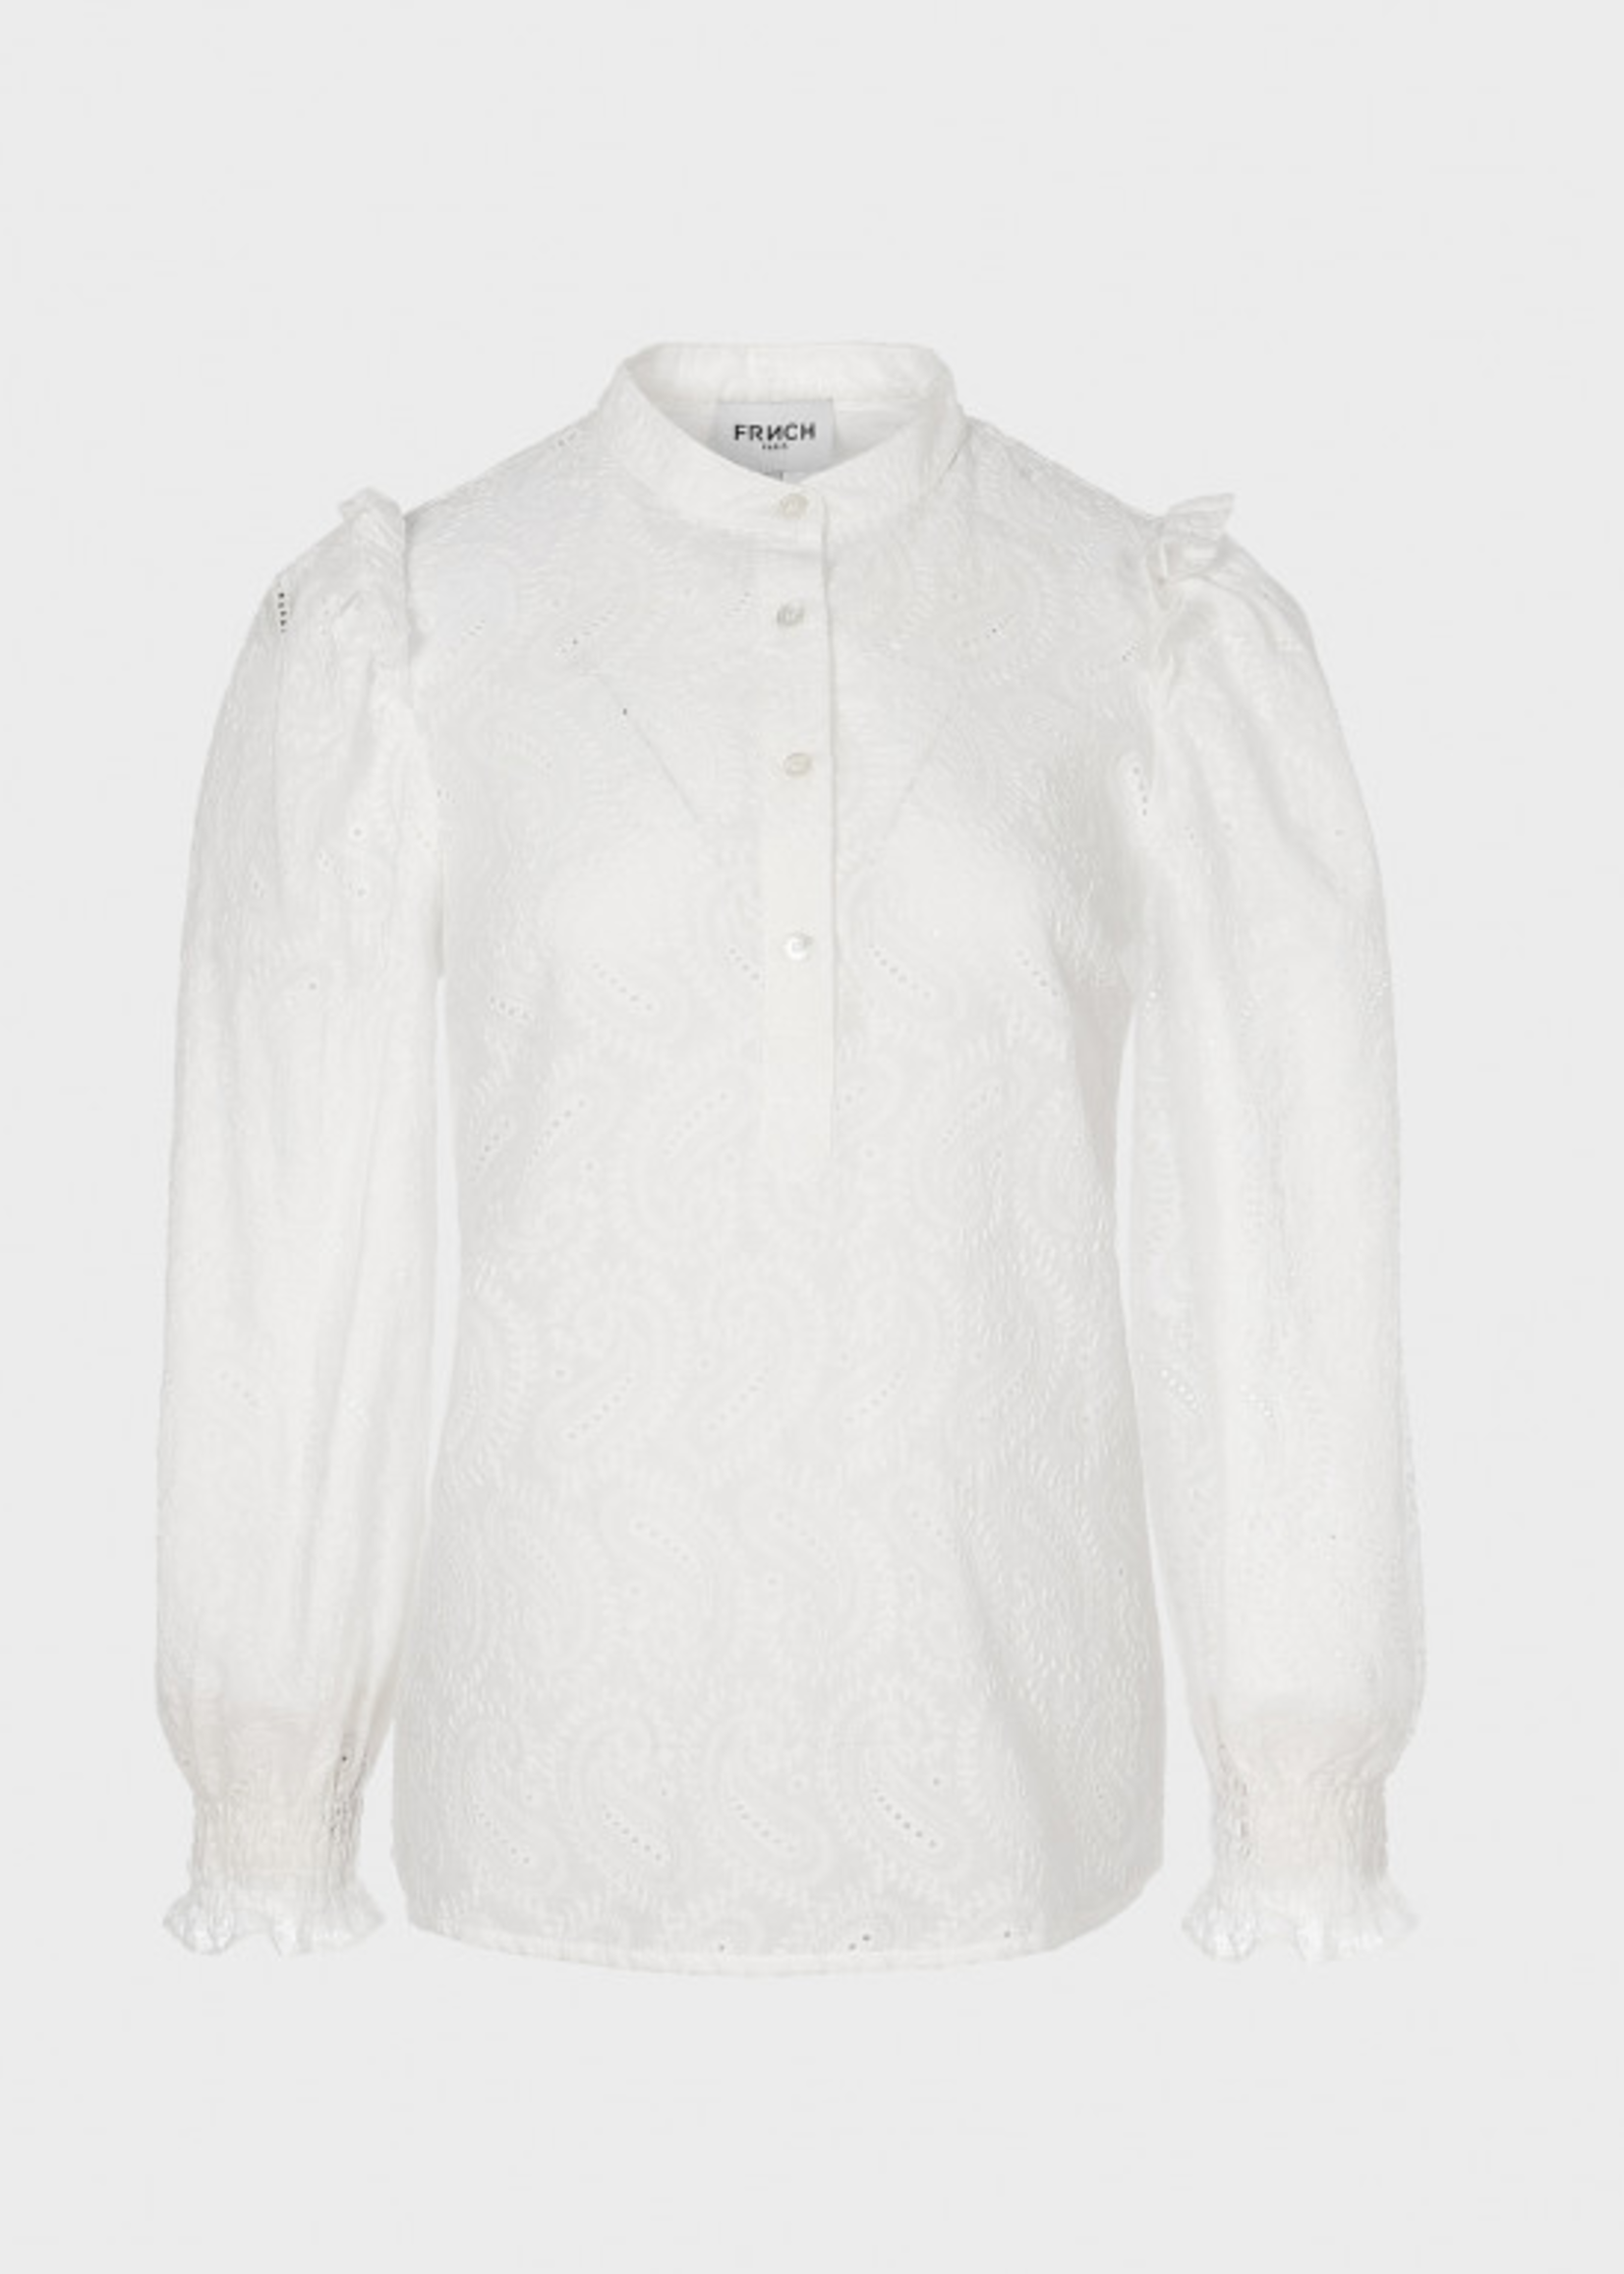 Frnch CLYDE CHEMISE